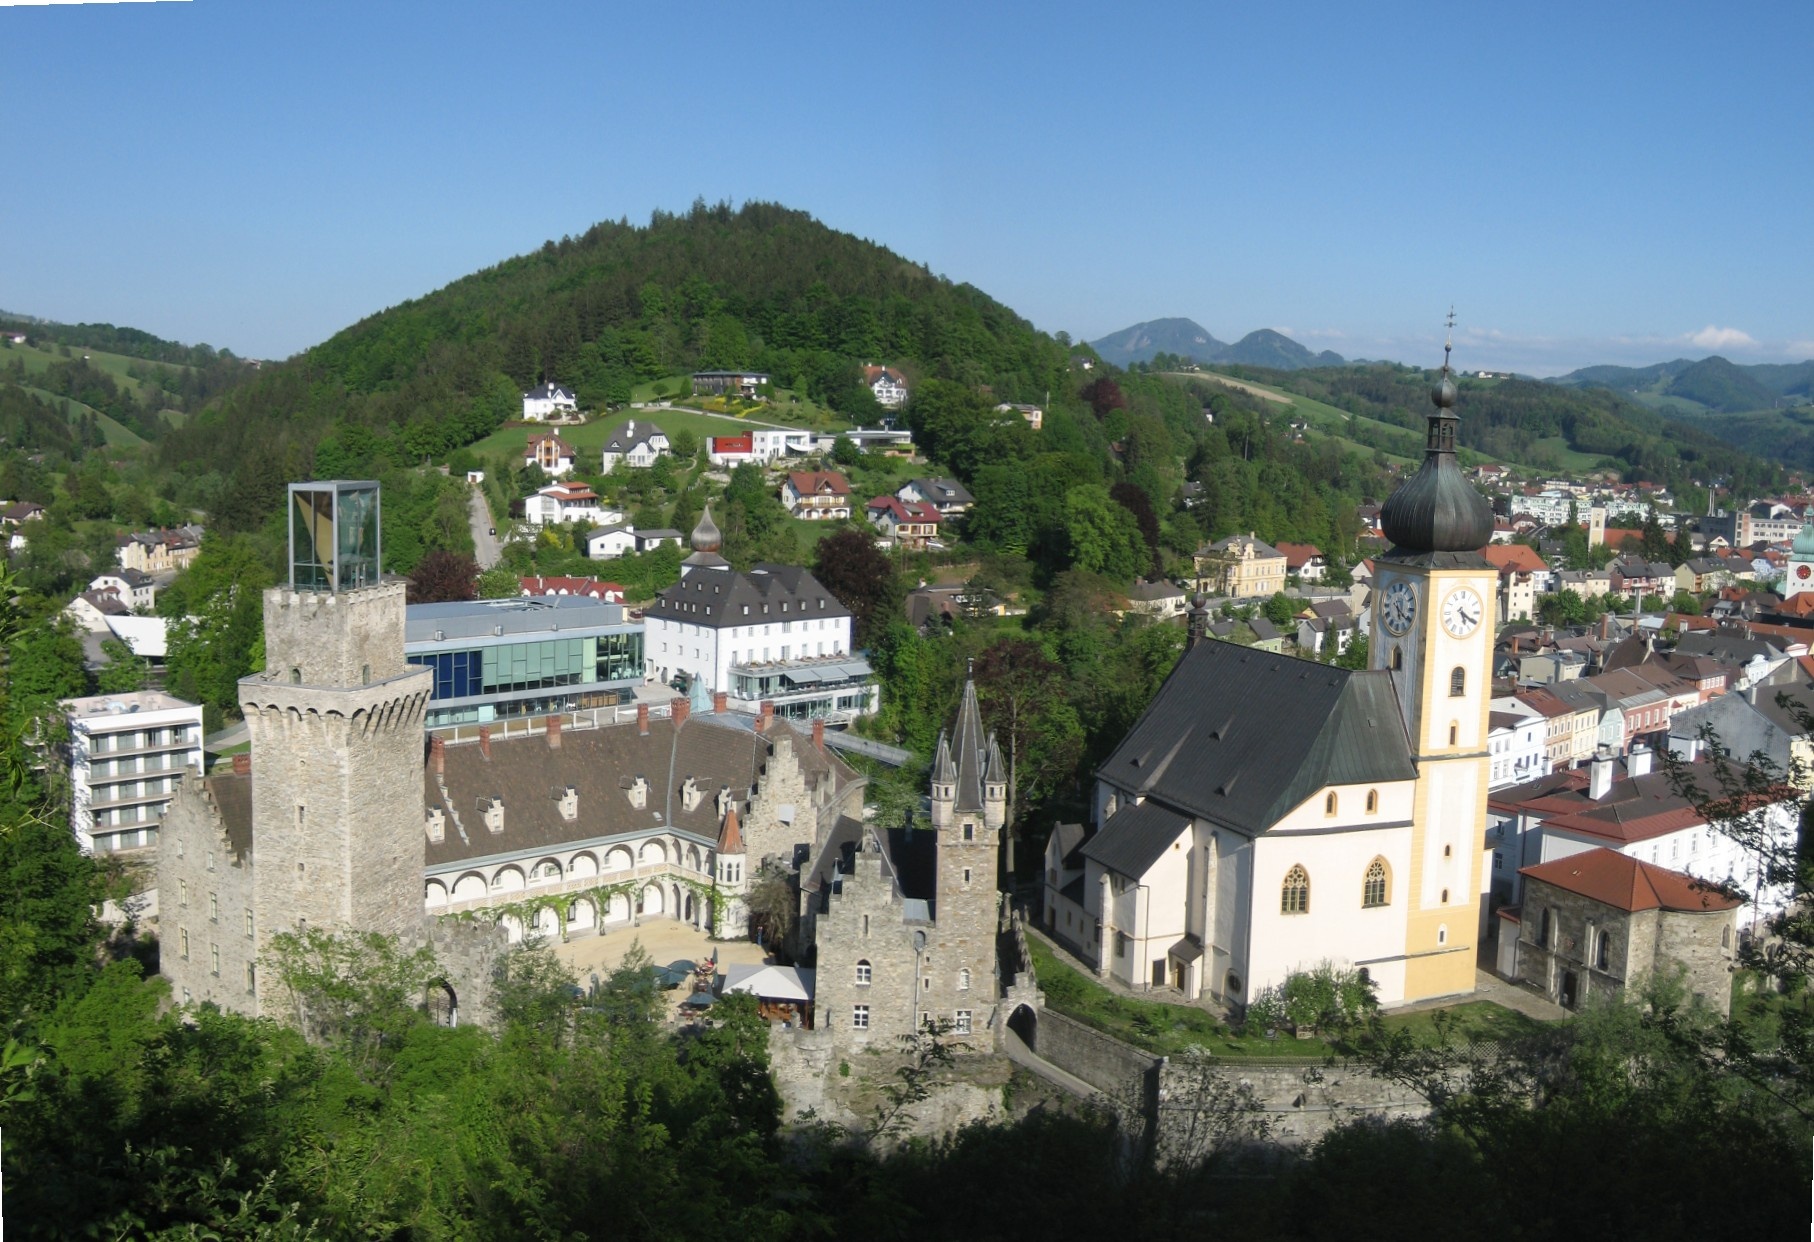 Que Visiter  Ef Bf Bd C Ef Bf Bdt Ef Bf Bd De La Ville Luxembourg